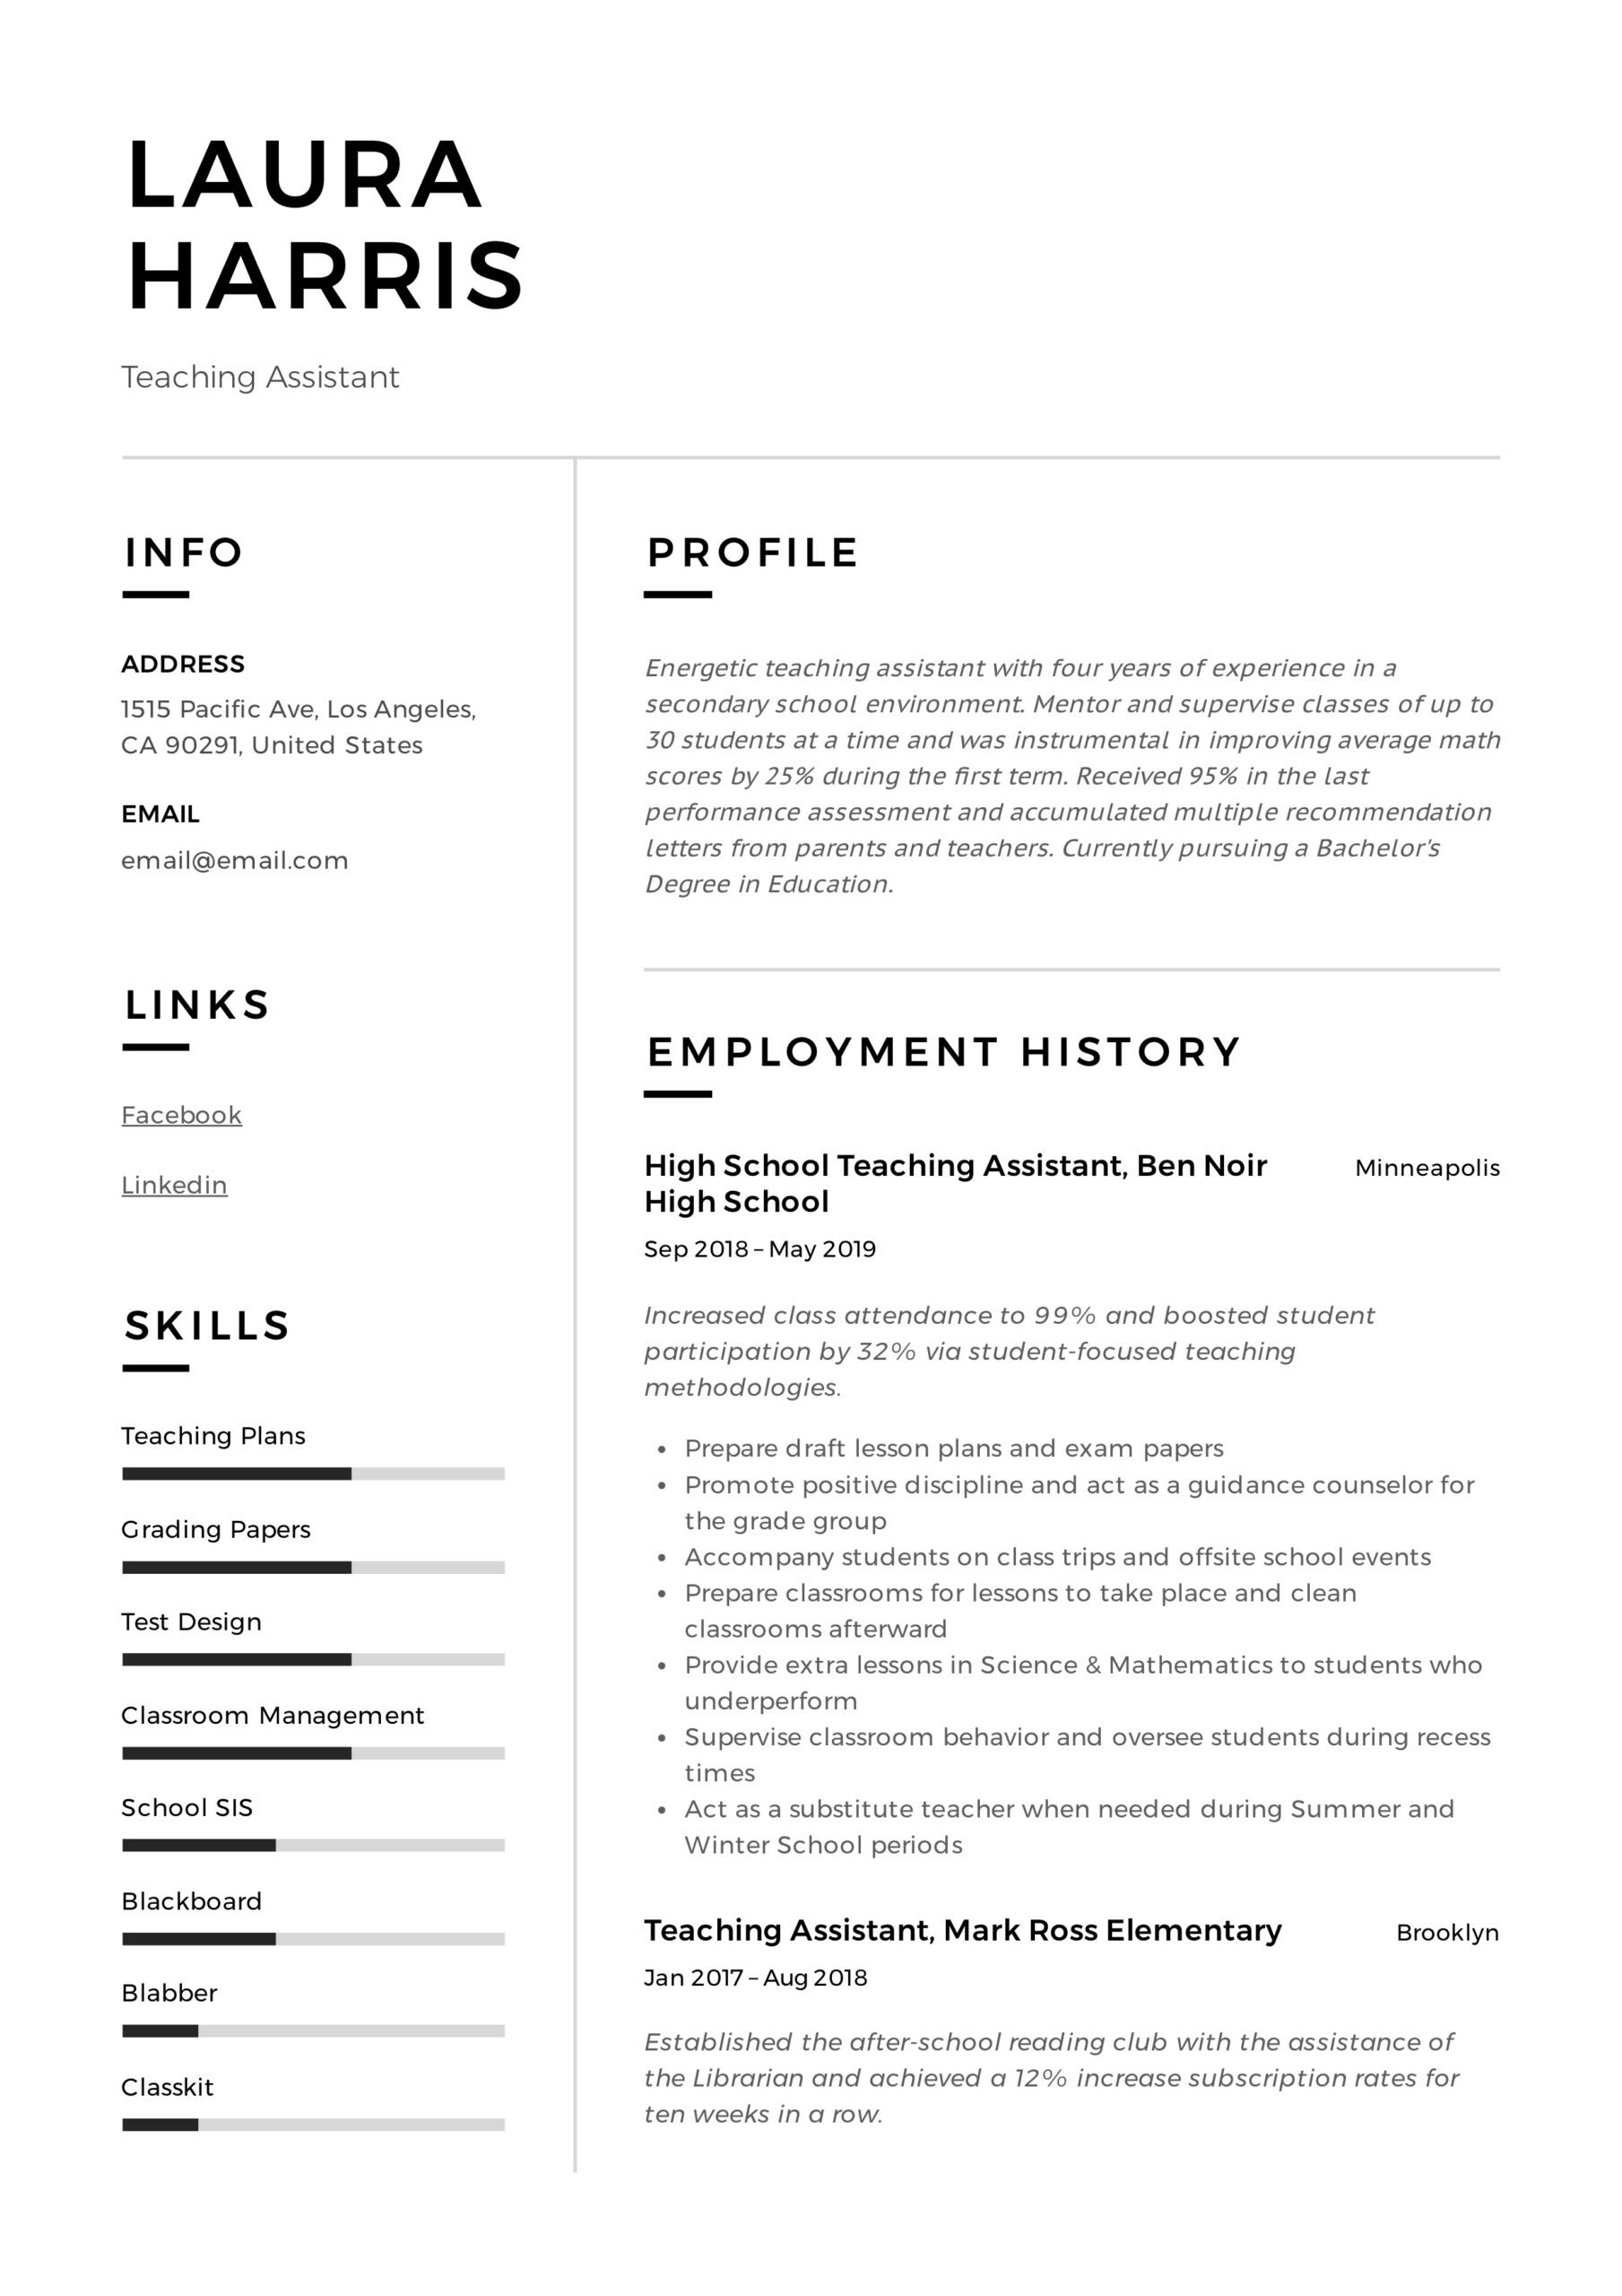 teaching assistant resume writing guide templates pdf objective for teacher template Resume Objective For Resume For Teacher Assistant